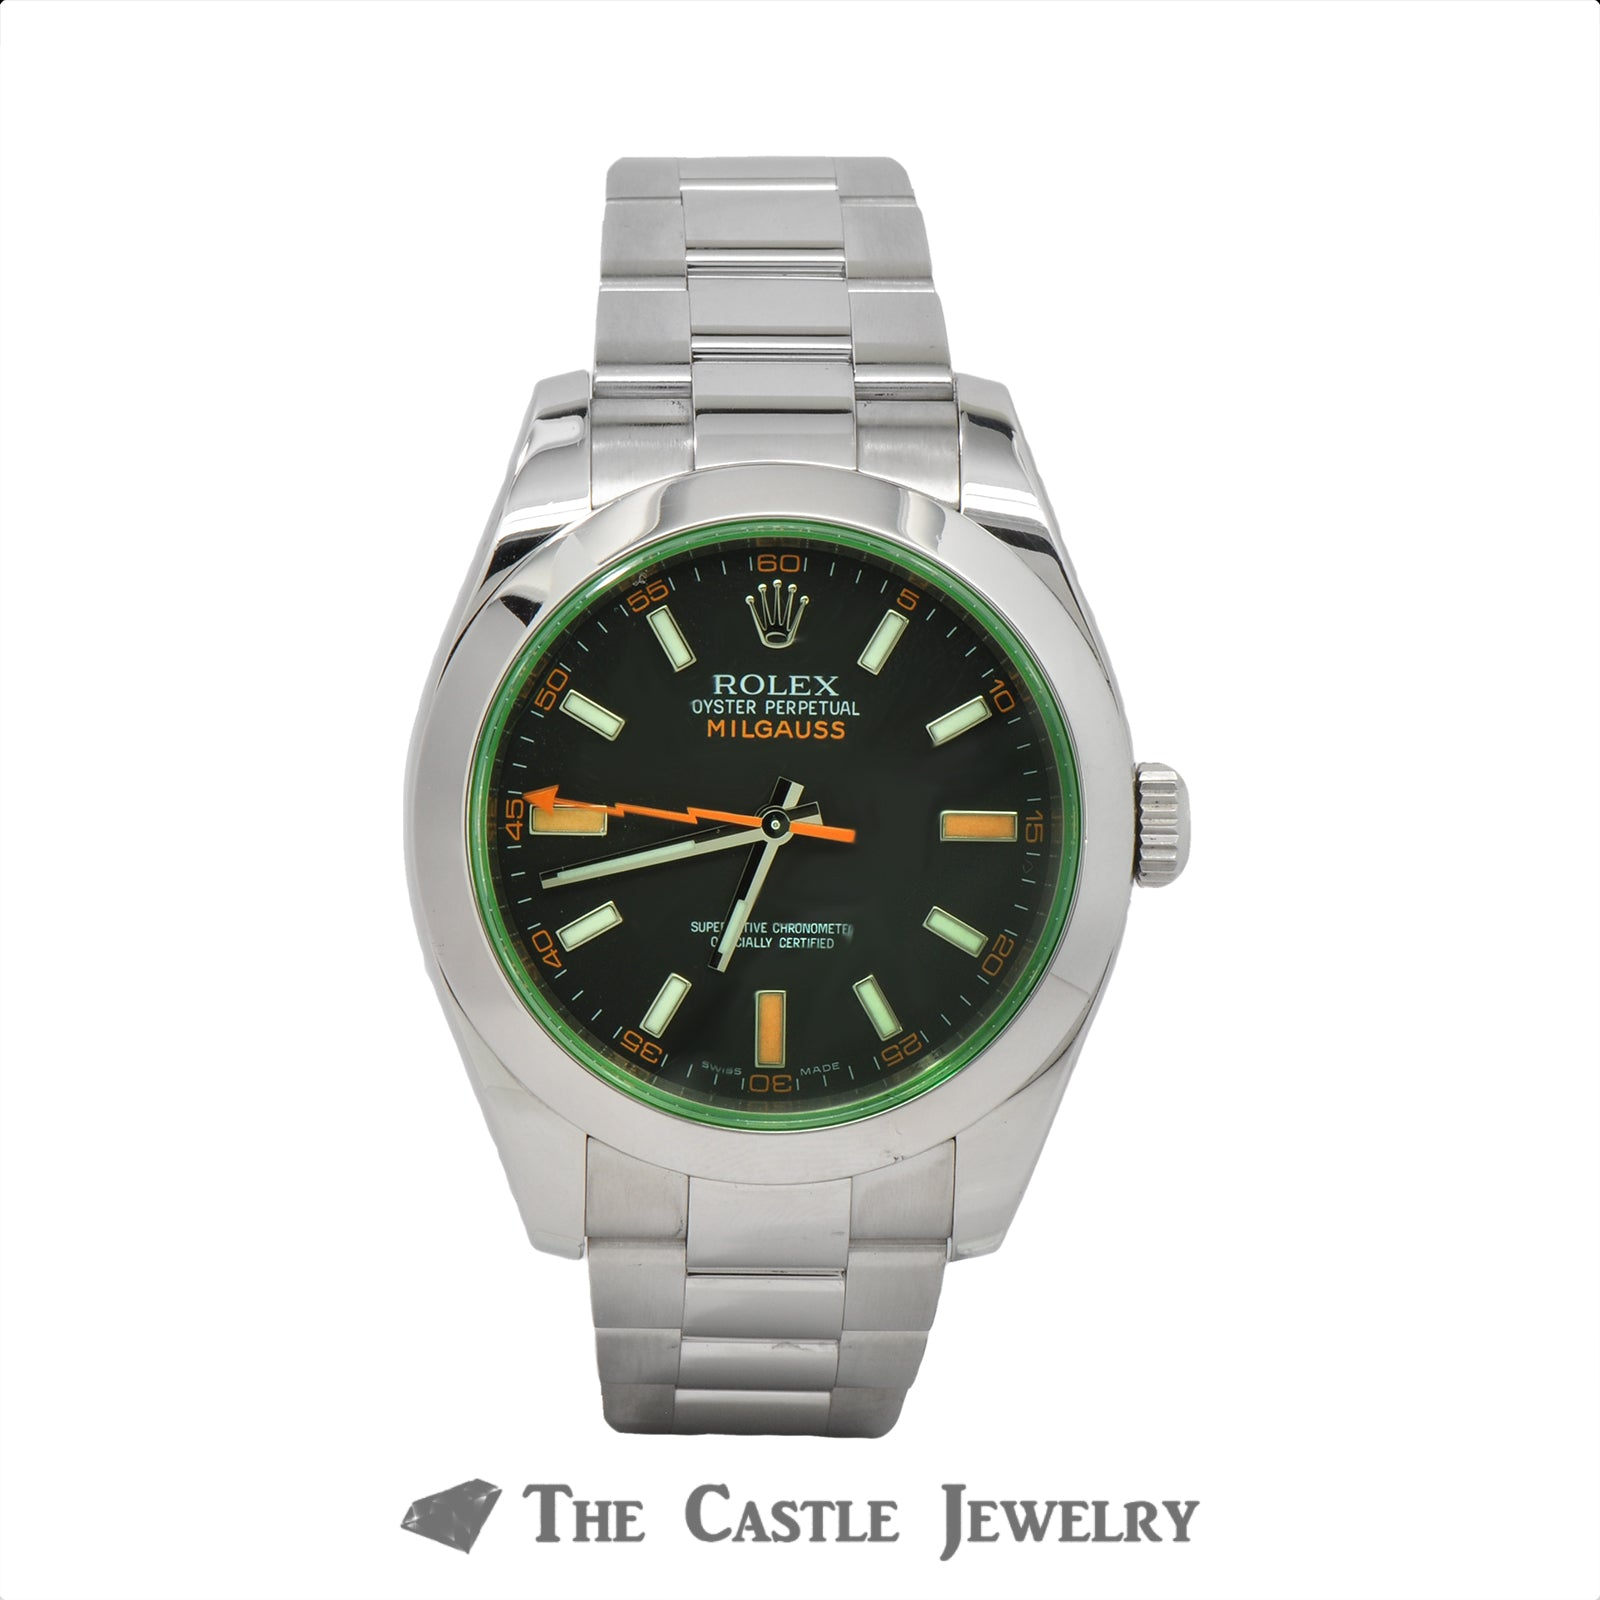 Rolex Milgauss Black Dial with Green Sapphire Crystal 116400GV